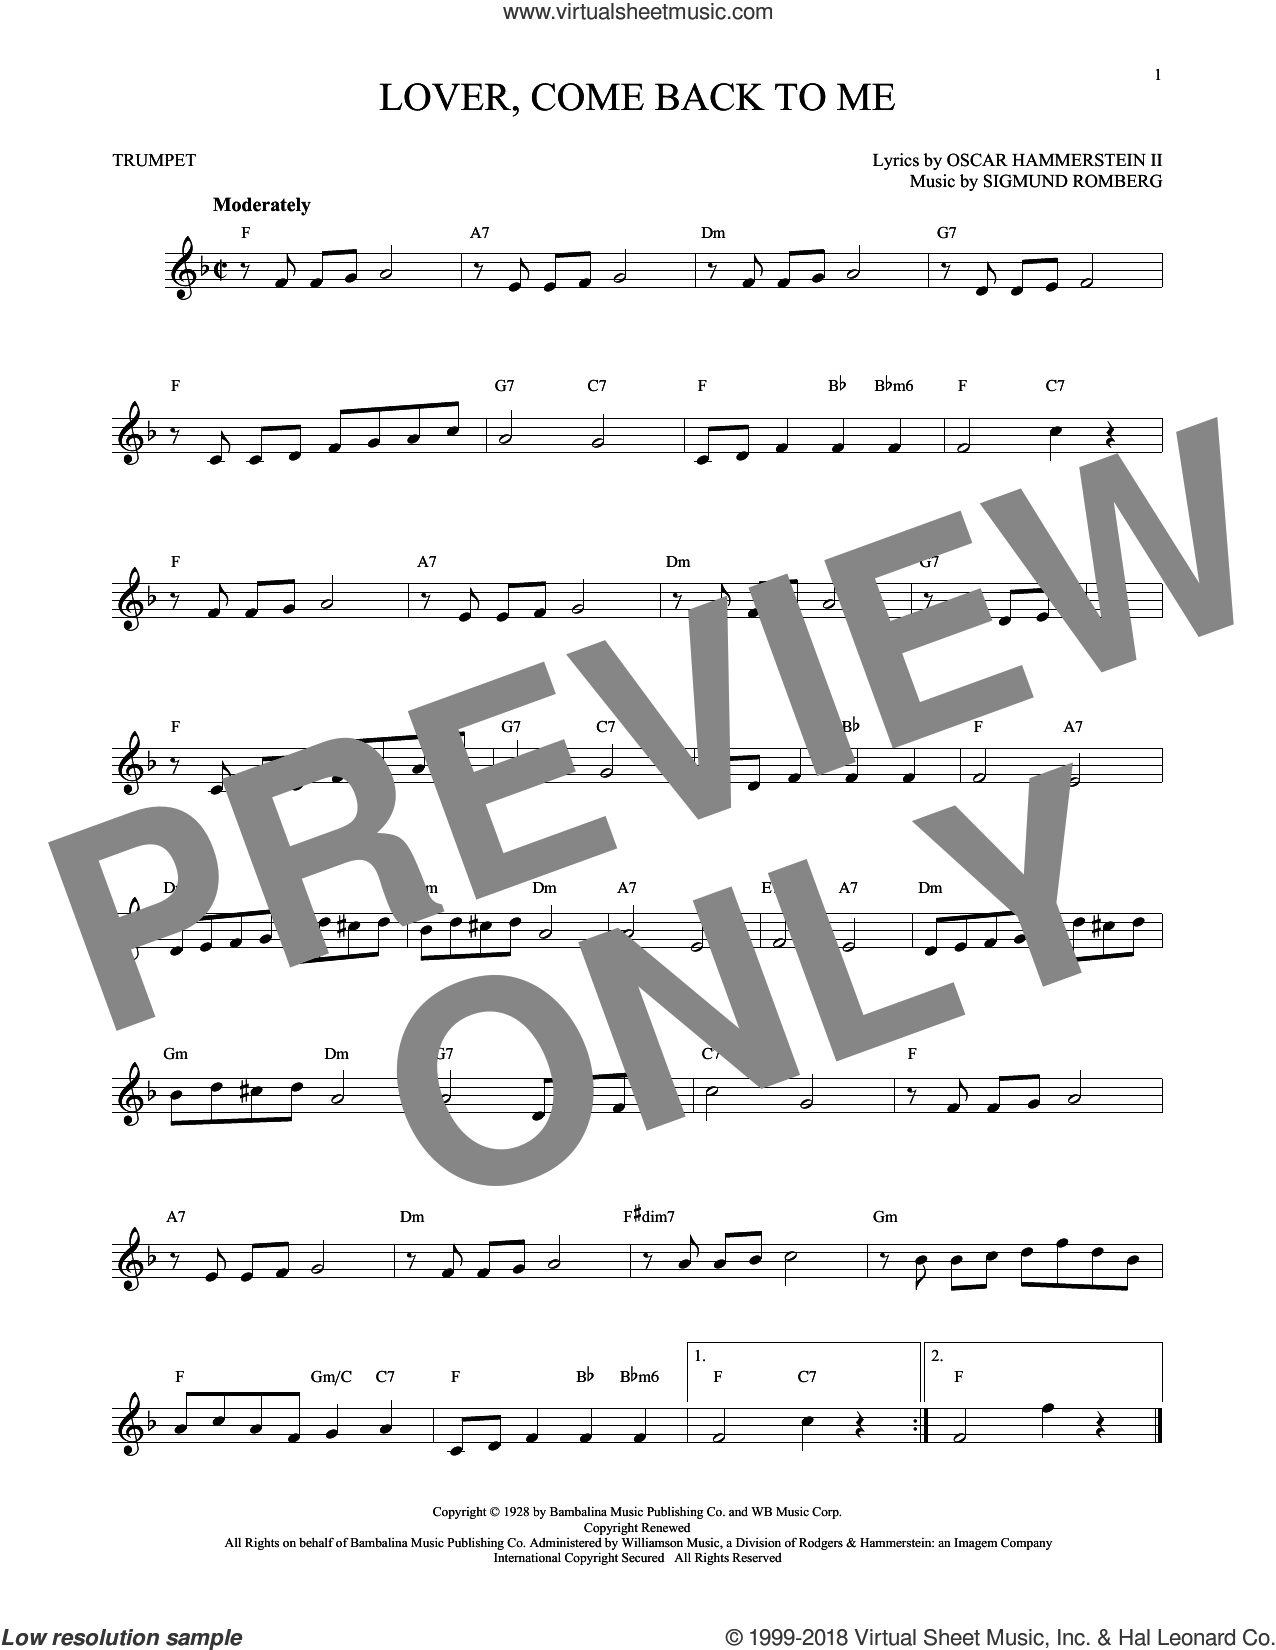 Lover, Come Back To Me sheet music for trumpet solo by Oscar II Hammerstein and Sigmund Romberg, intermediate. Score Image Preview.